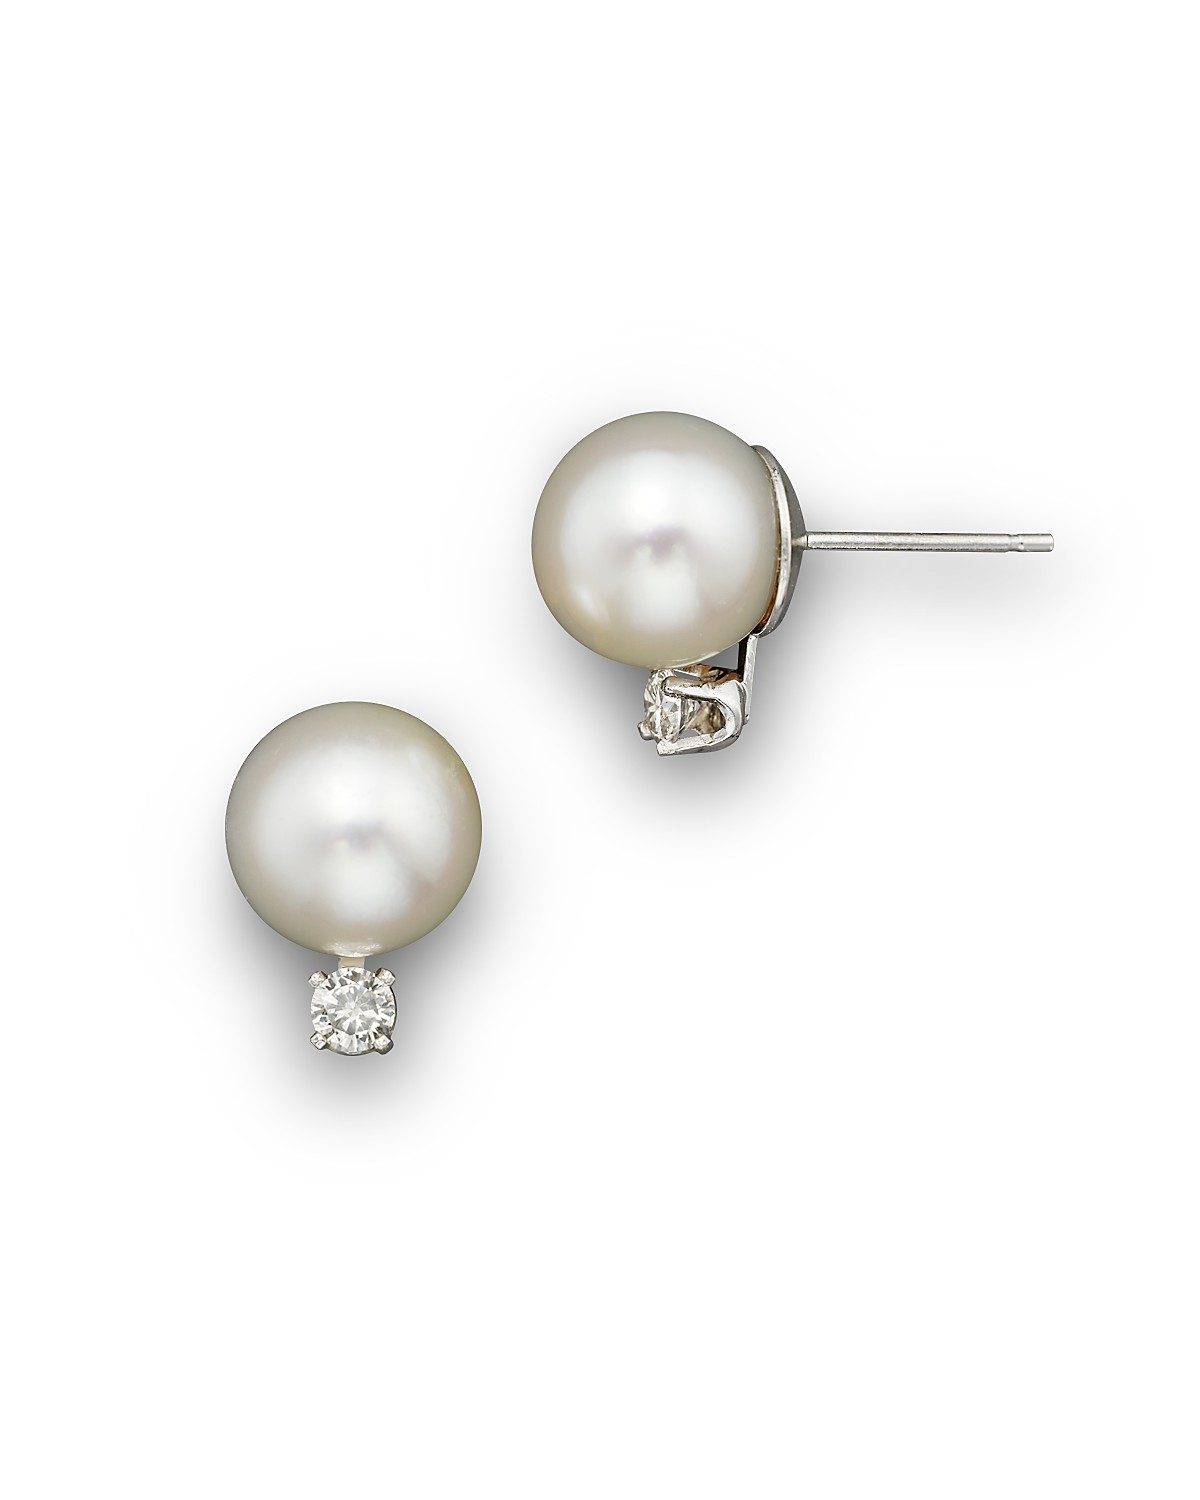 stud earrings from jewellery zoom jon faux richard pearl earring white